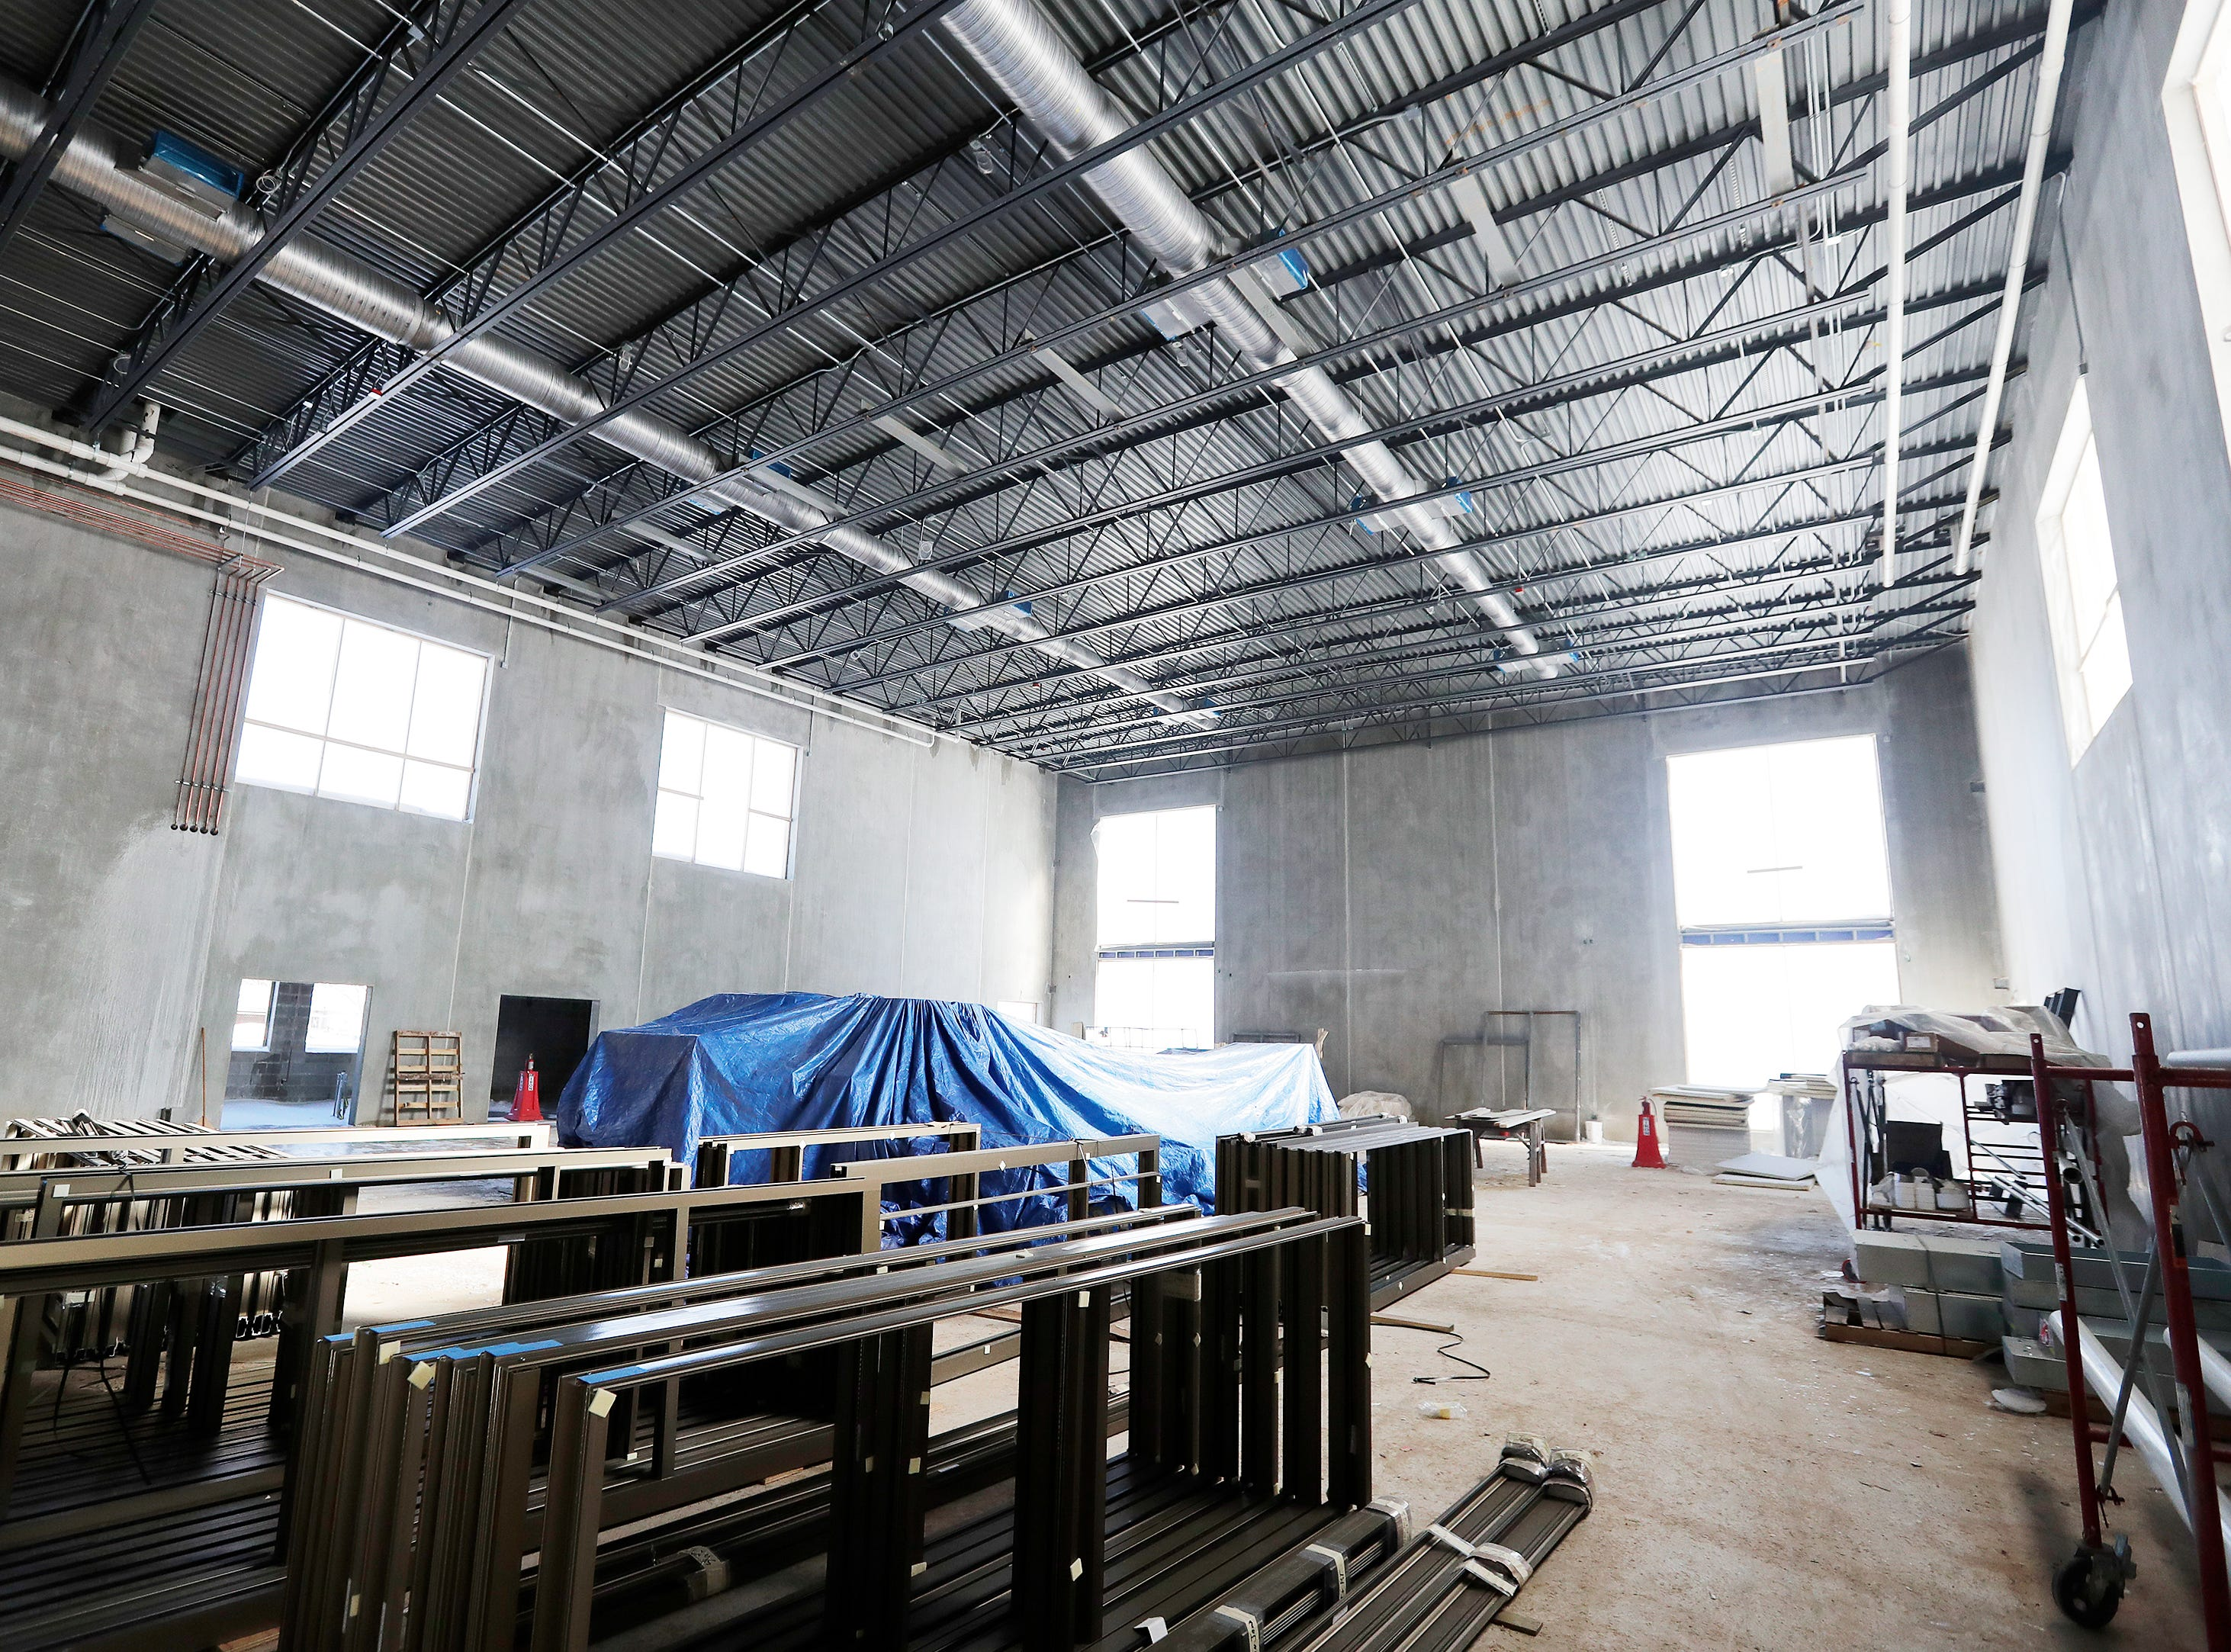 The under-construction gym at Baird Elementary School is shown on Wednesday, February 13, 2019 in Green Bay, Wis.